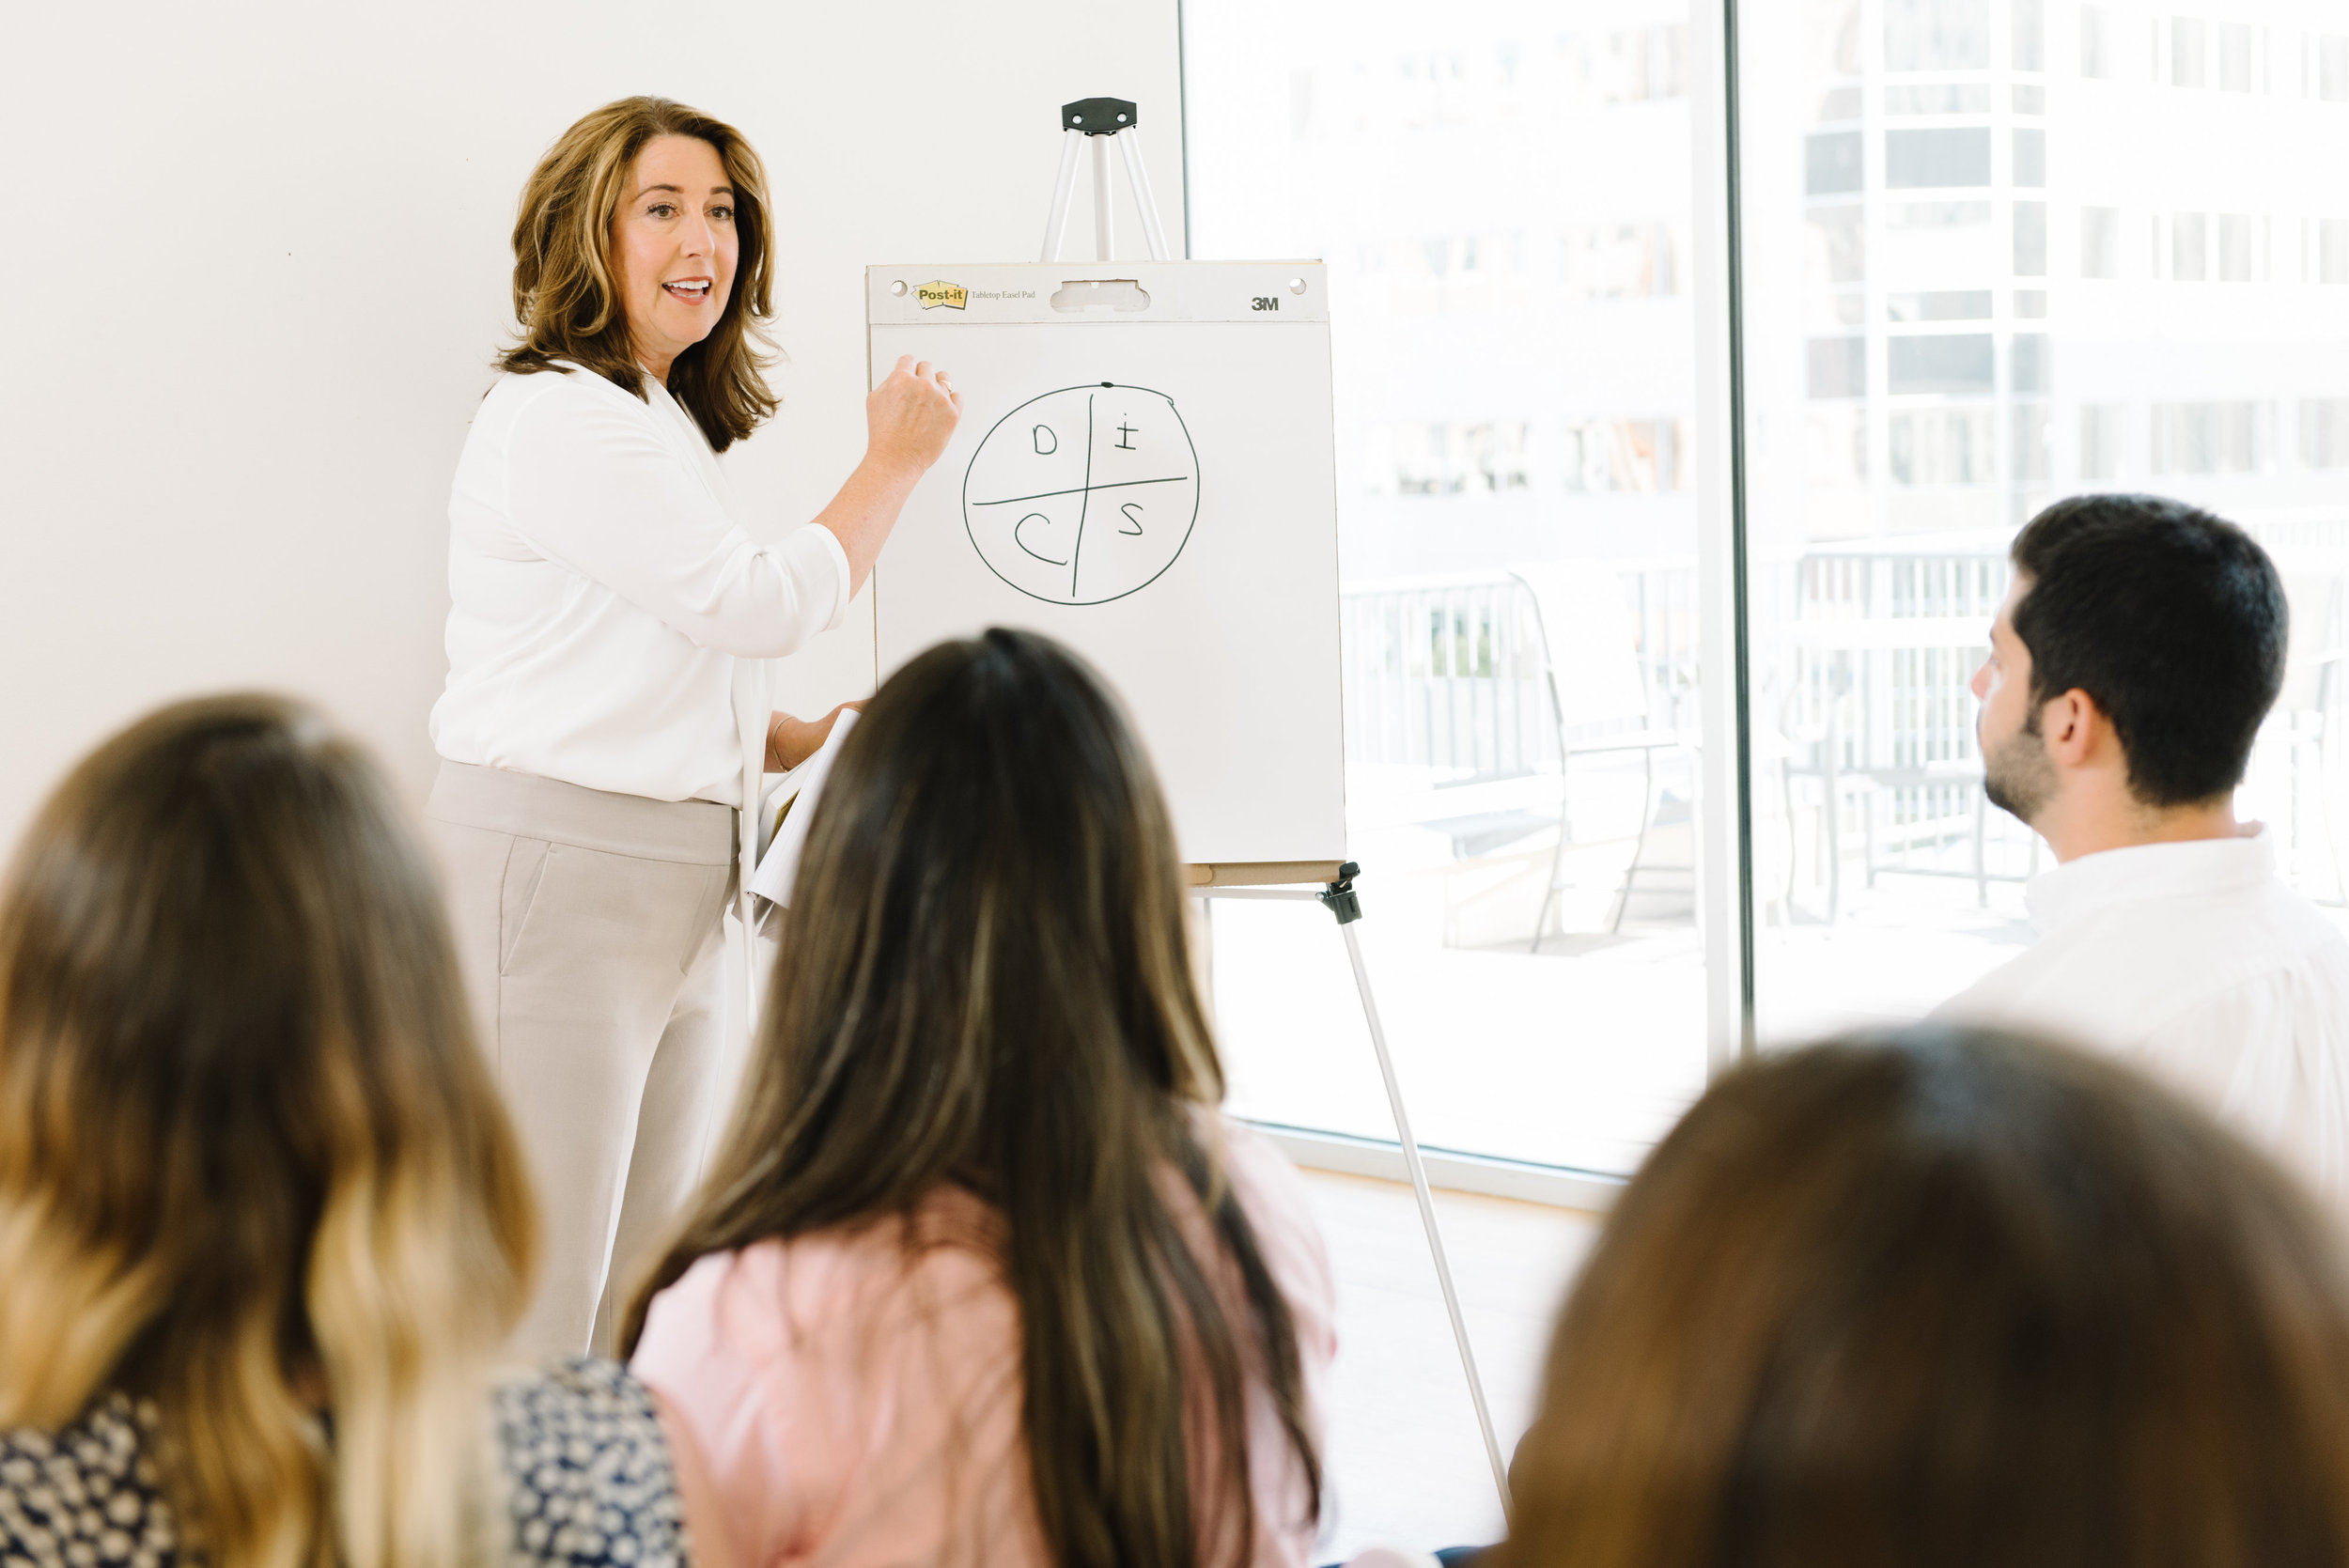 training and facilitation - We provide dynamic group coaching, employee trainings, and facilitation. Such training may include DiSC and other strengths-related assessments.